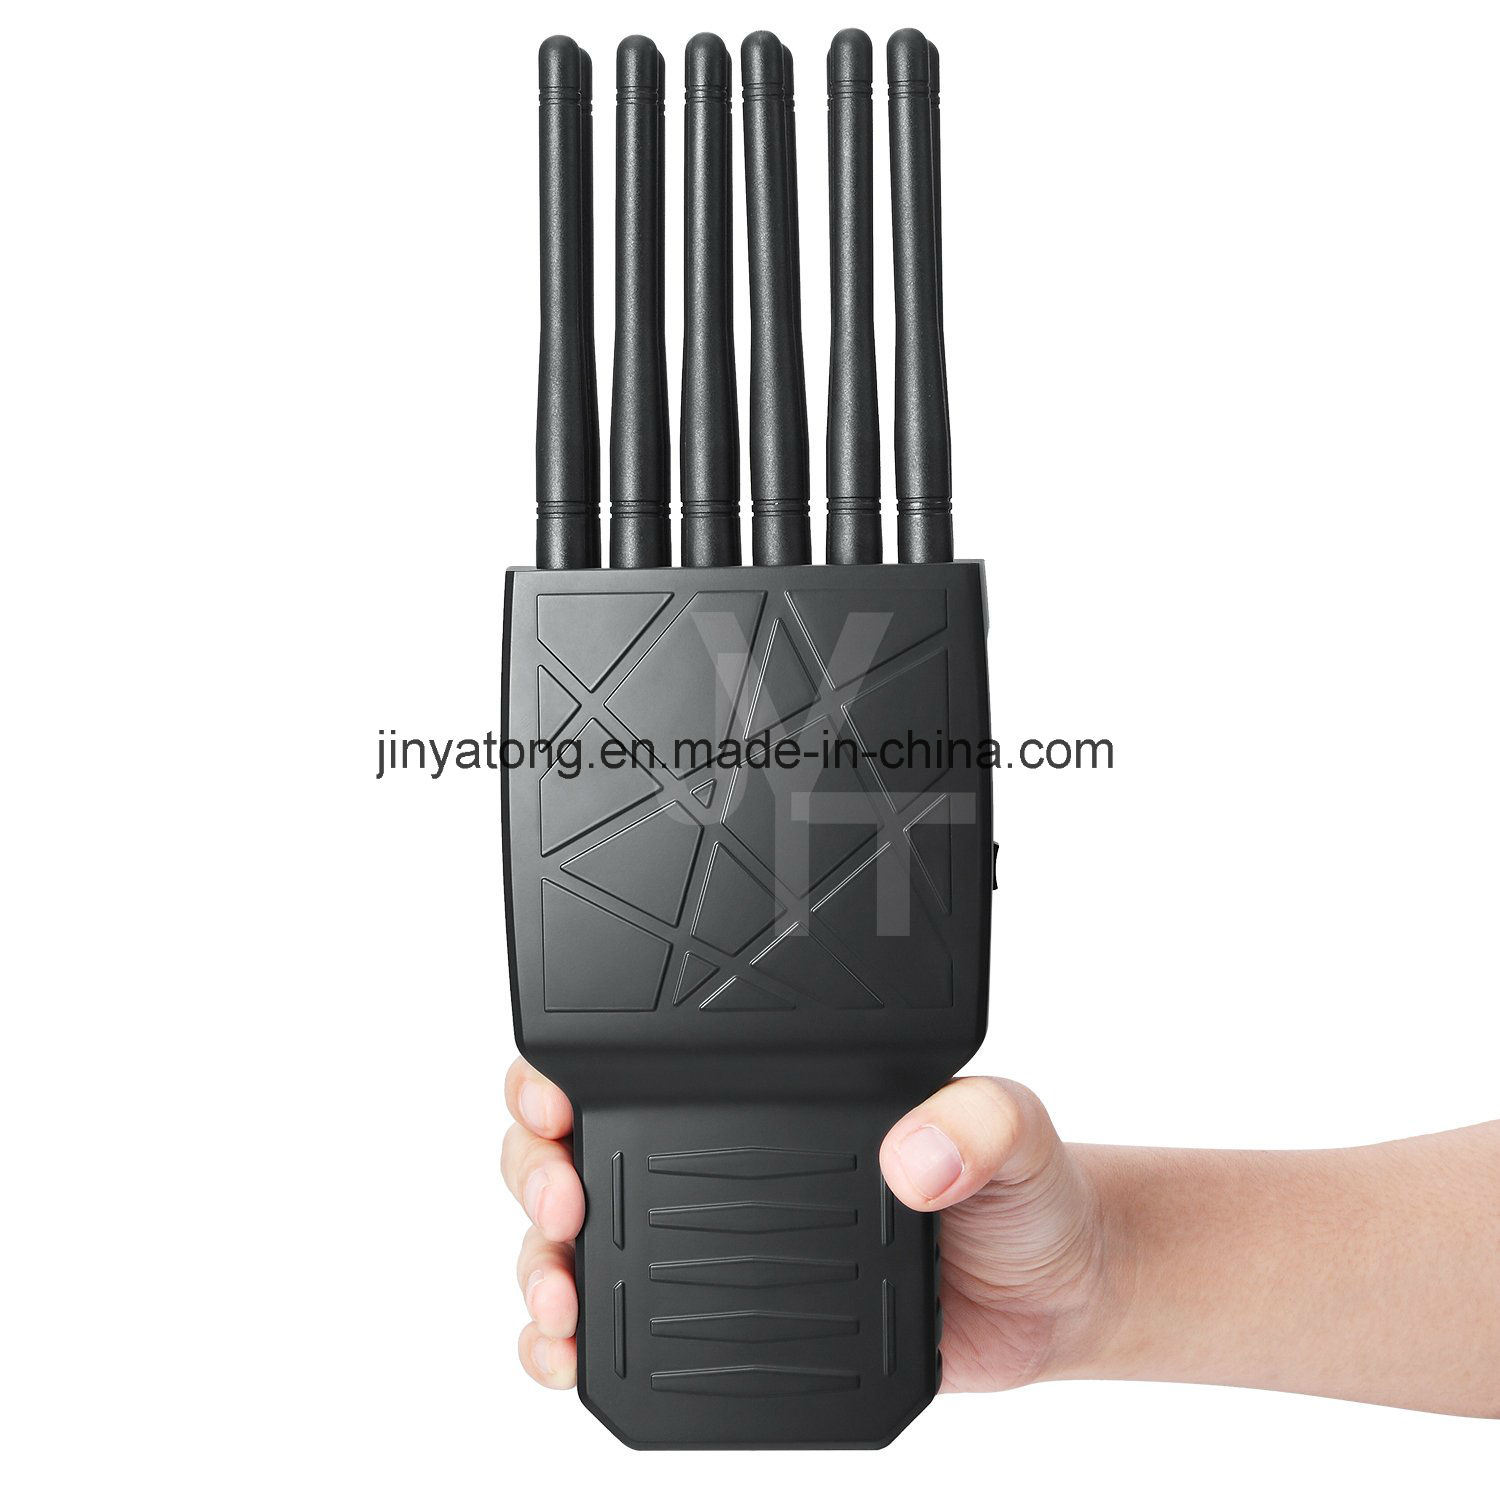 World First 12 Antennas Full Bands All in One Cell Phone Signal Jammer Blocking GPS WiFi RF Signal pictures & photos